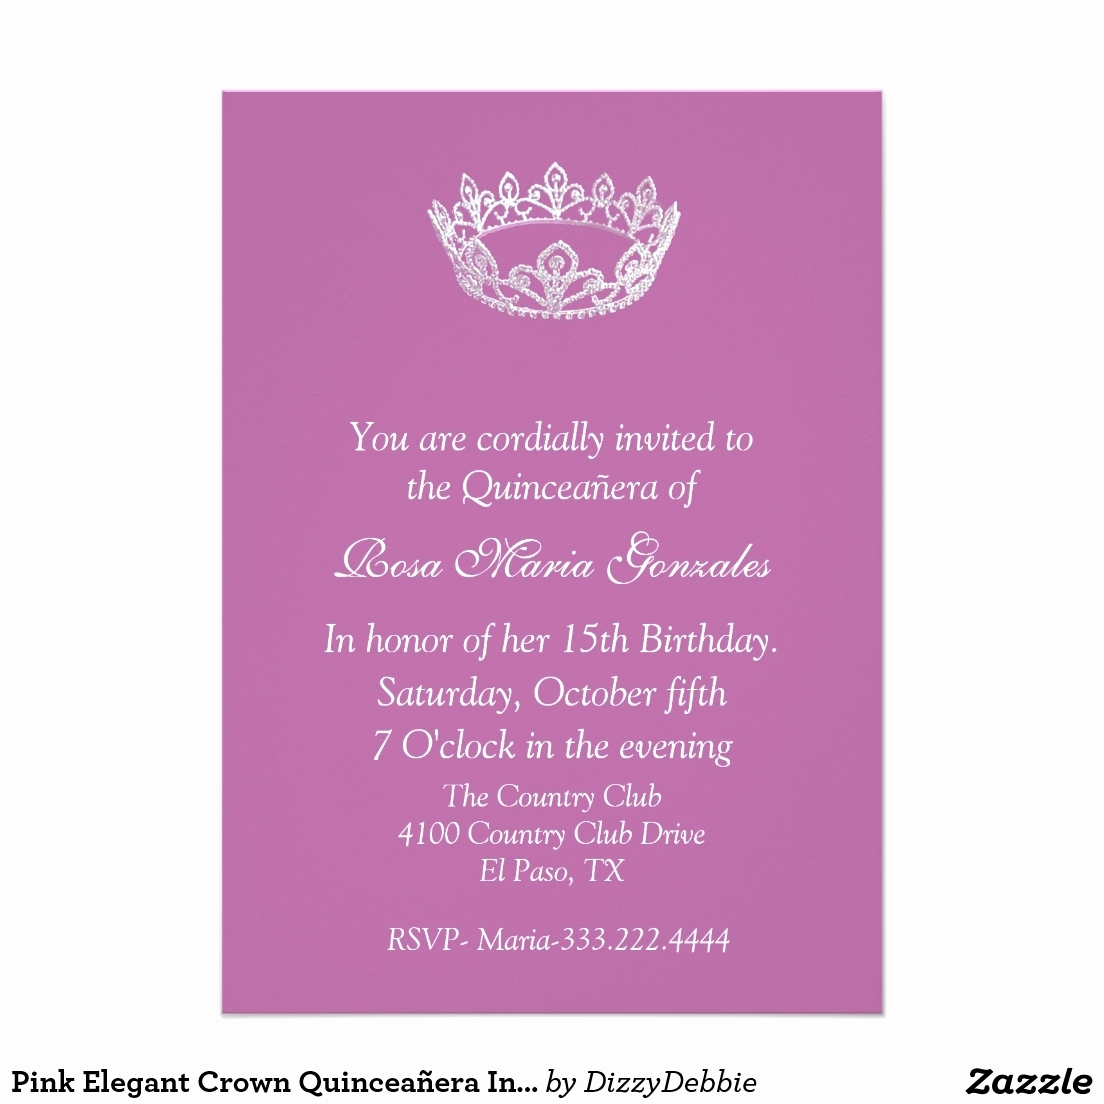 Quinceanera Invitation Wording In English Awesome Quotes for Quinceanera Invitations In Spanish Cobypic